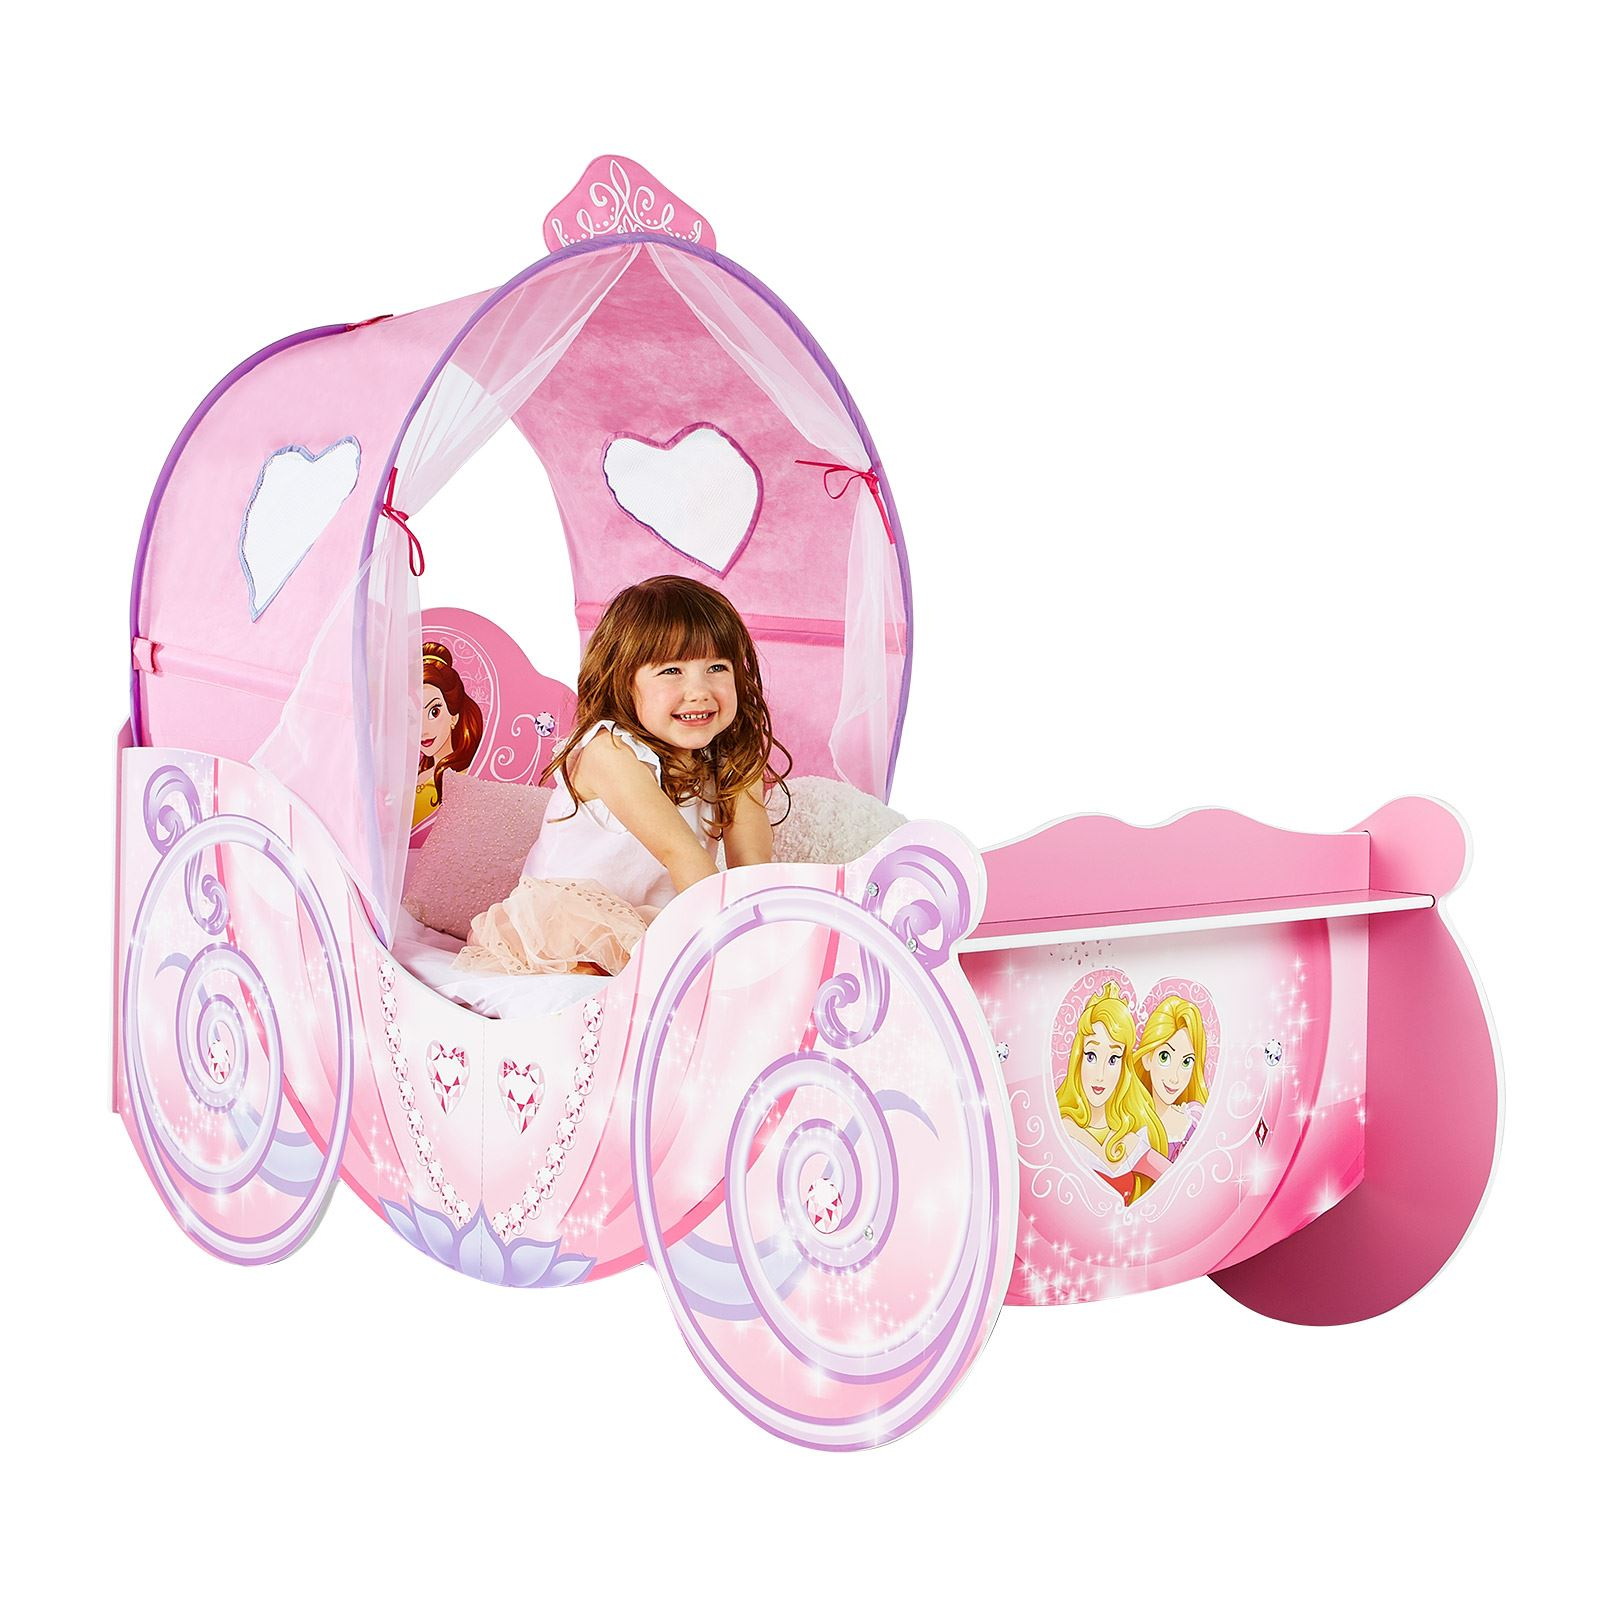 Disney princess carriage fonction toddler bed and 3 matelas options disponibles